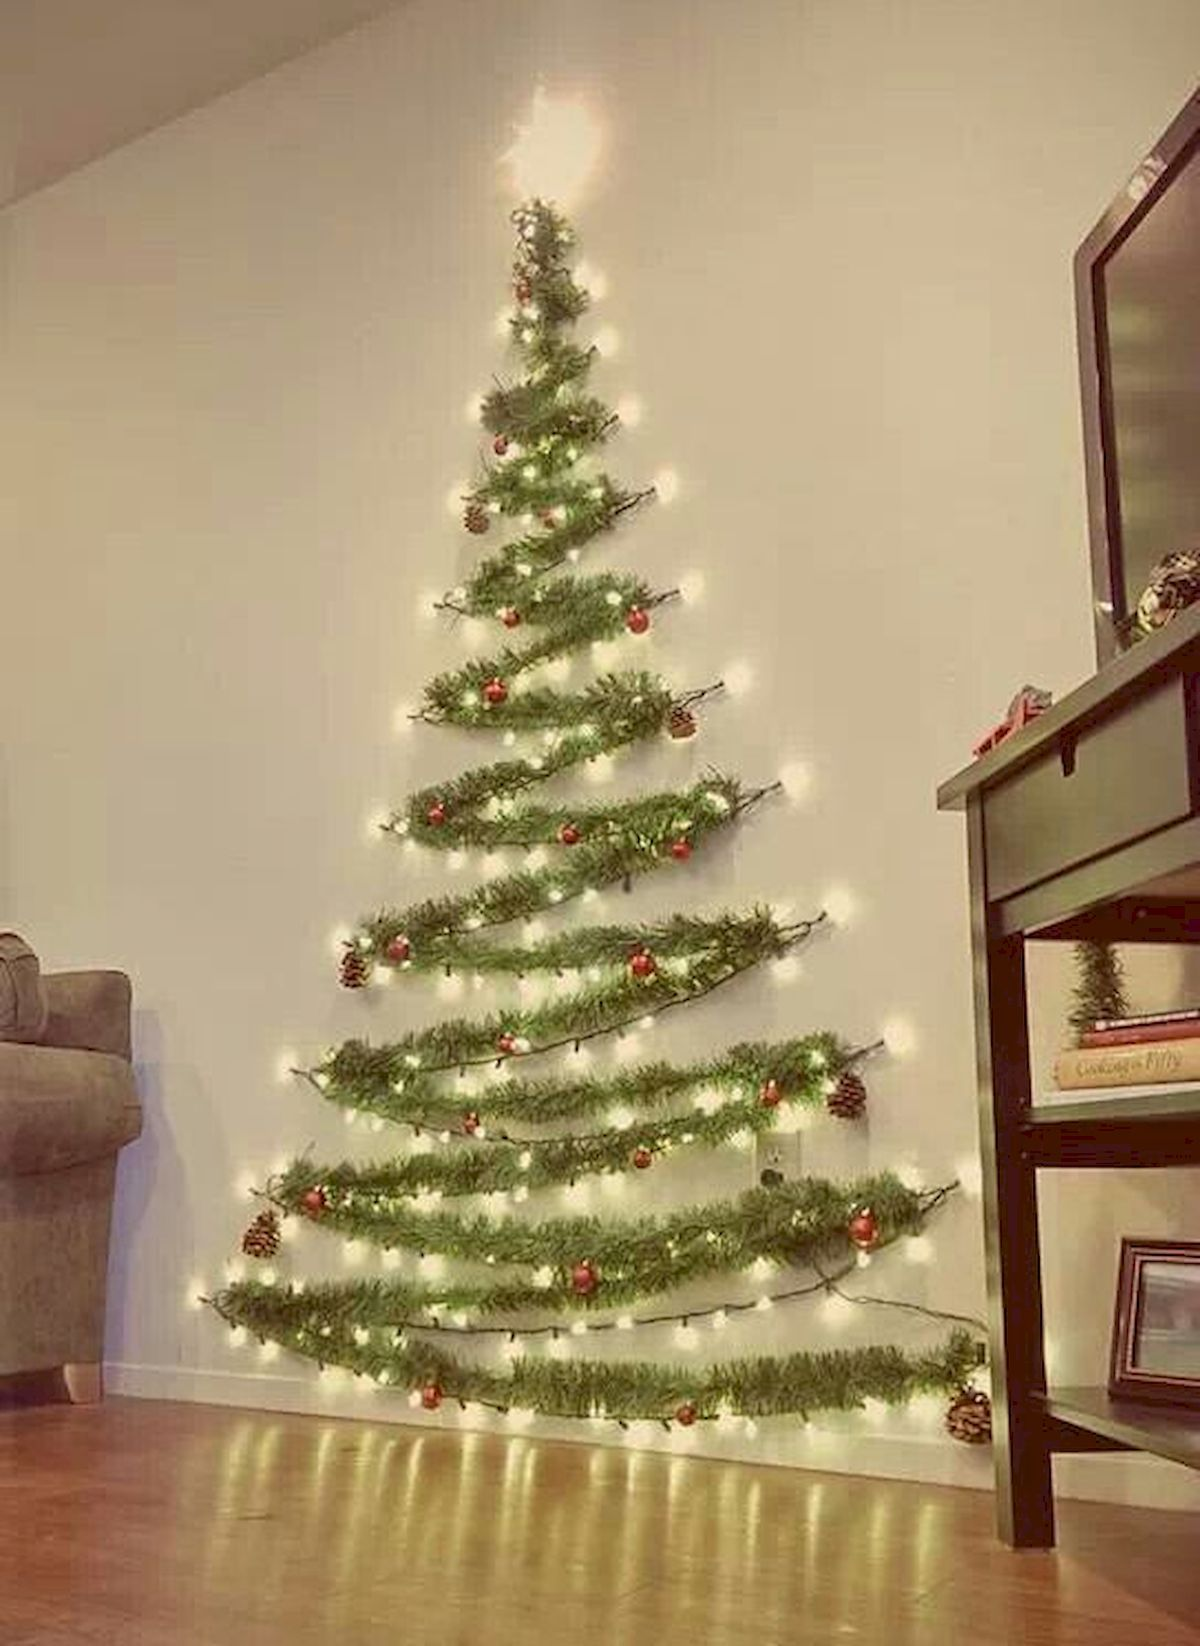 Awesome 60 Simple Christmas Living Room Decorations Ideas Https Roomadness Com 2018 0 Wall Christmas Tree Christmas Decorations Apartment Christmas Apartment